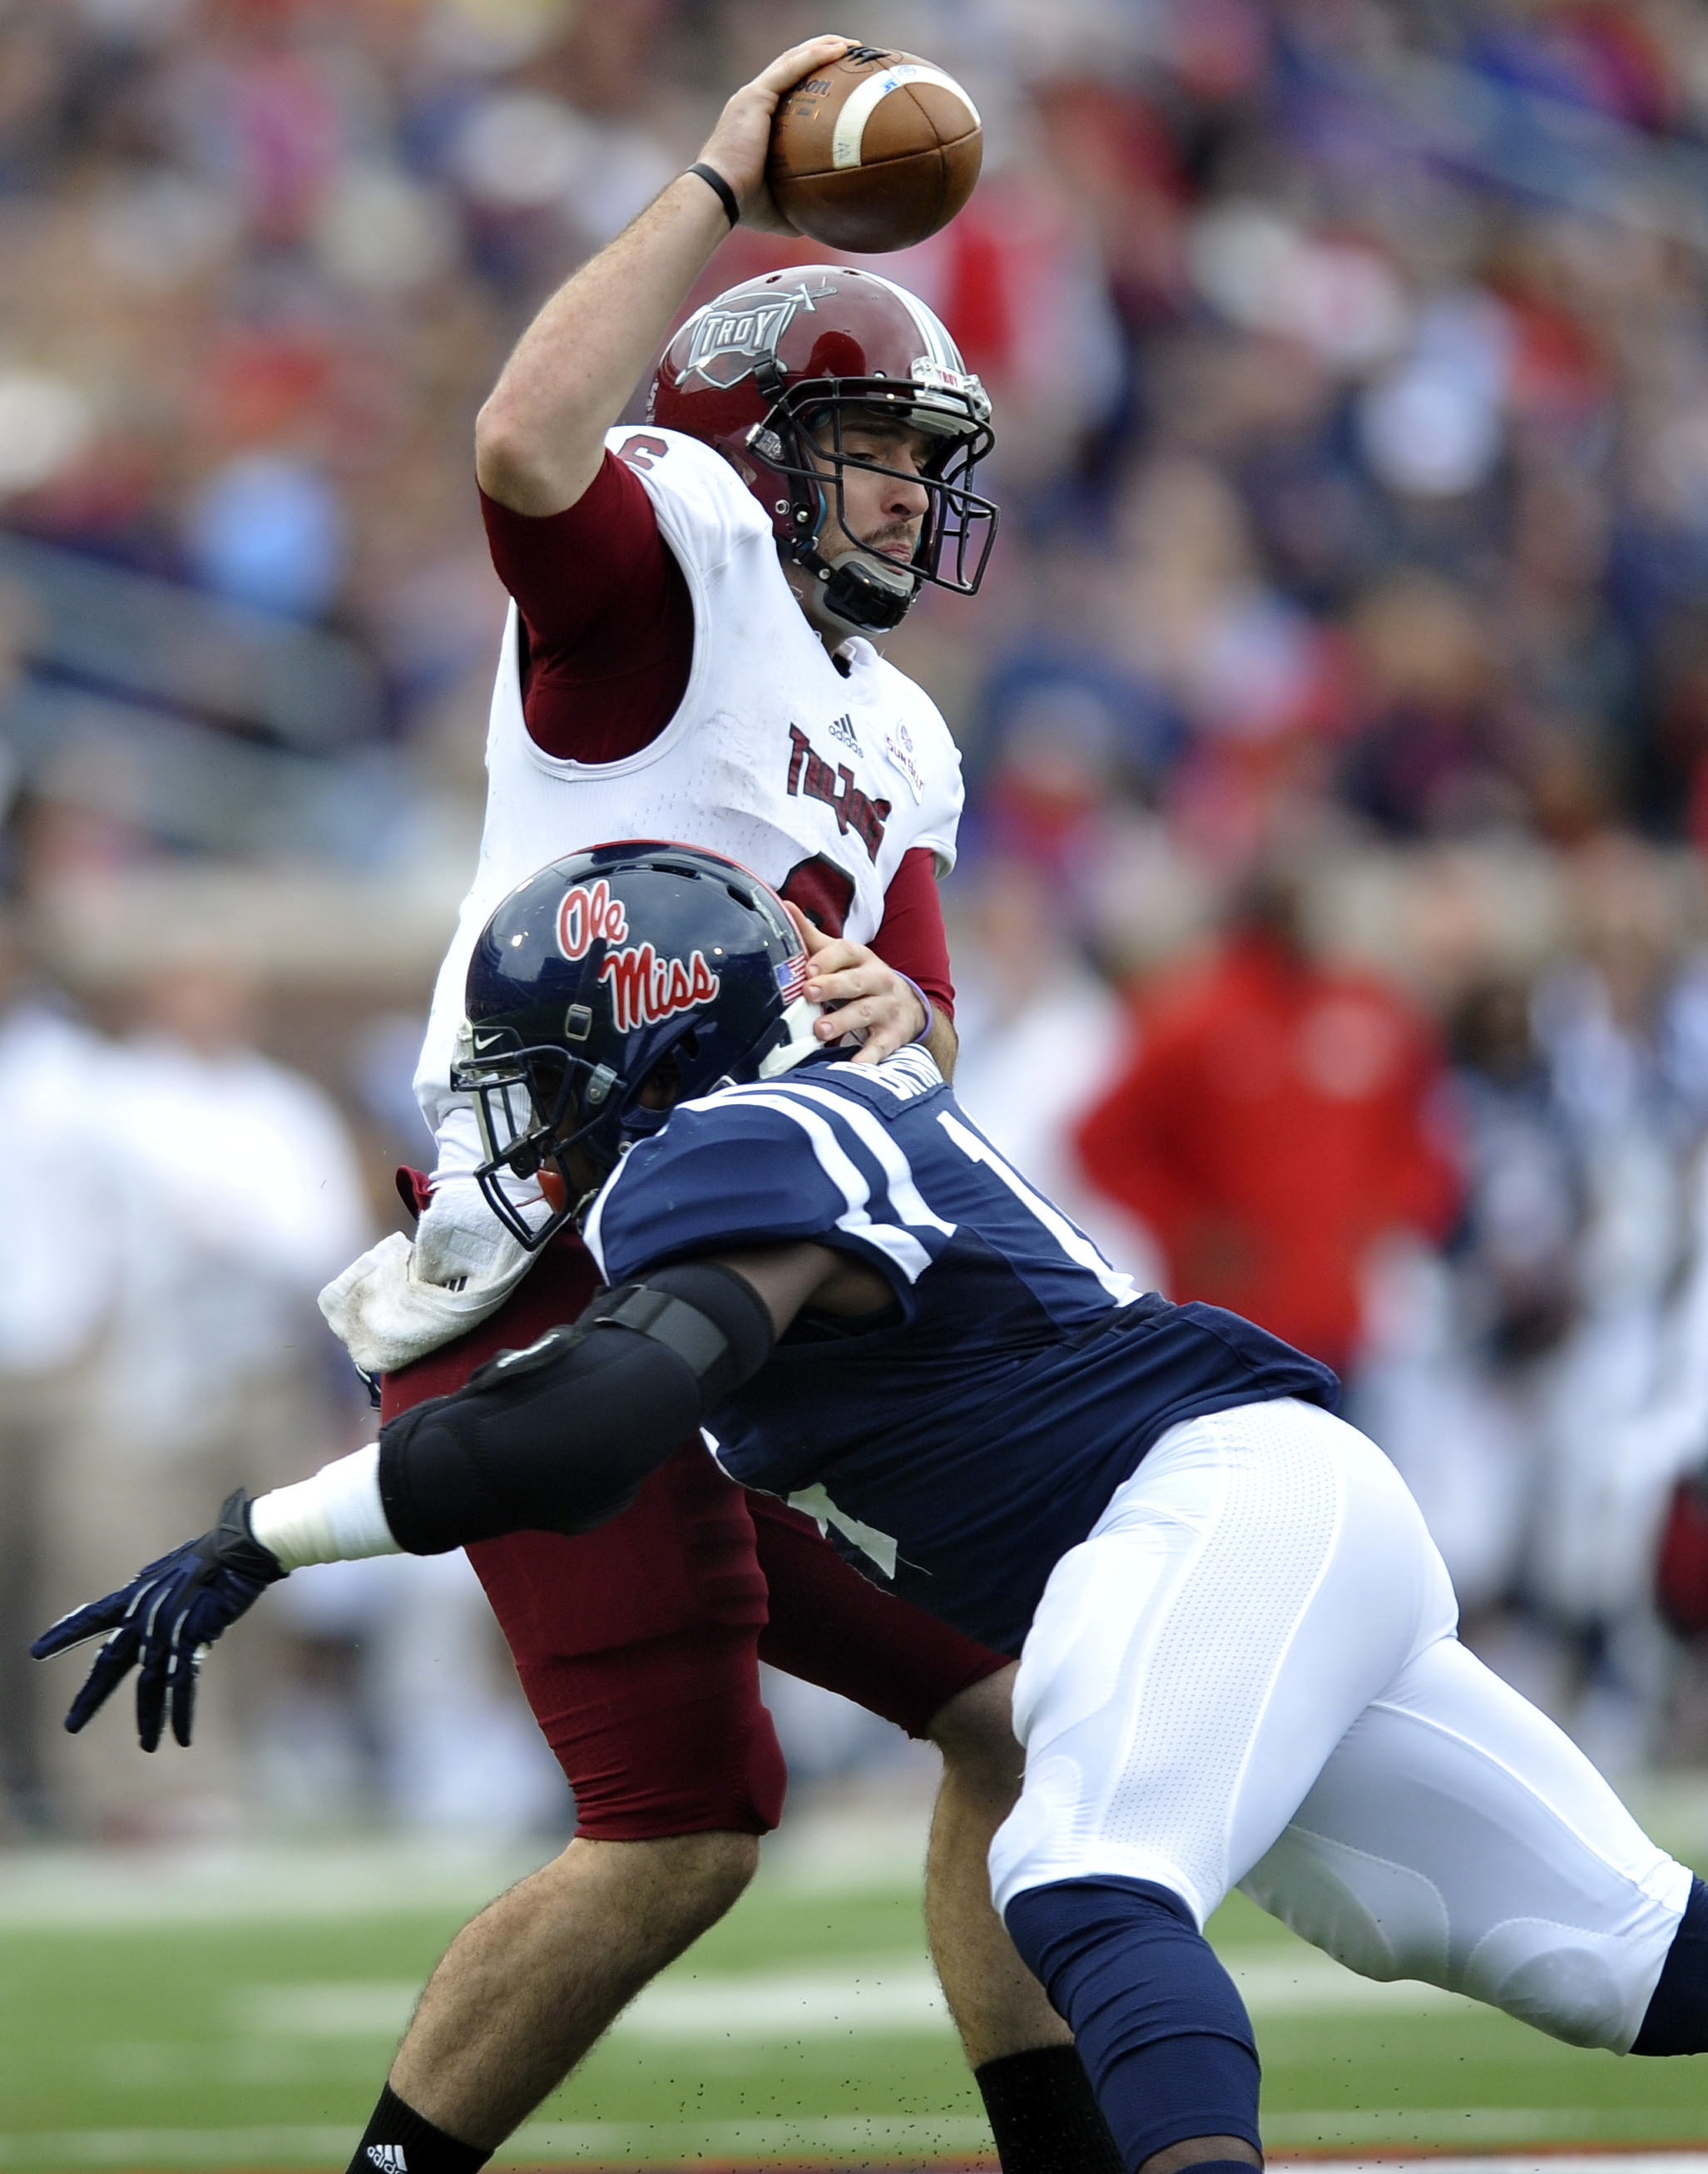 Mississippi linebacker Serderius Bryant (14) sacks Troy quarterback Corey Robinson (6) during an NCAA college football game in Oxford, Miss., Saturday, Nov. 16, 2013. Troy recovered the ball